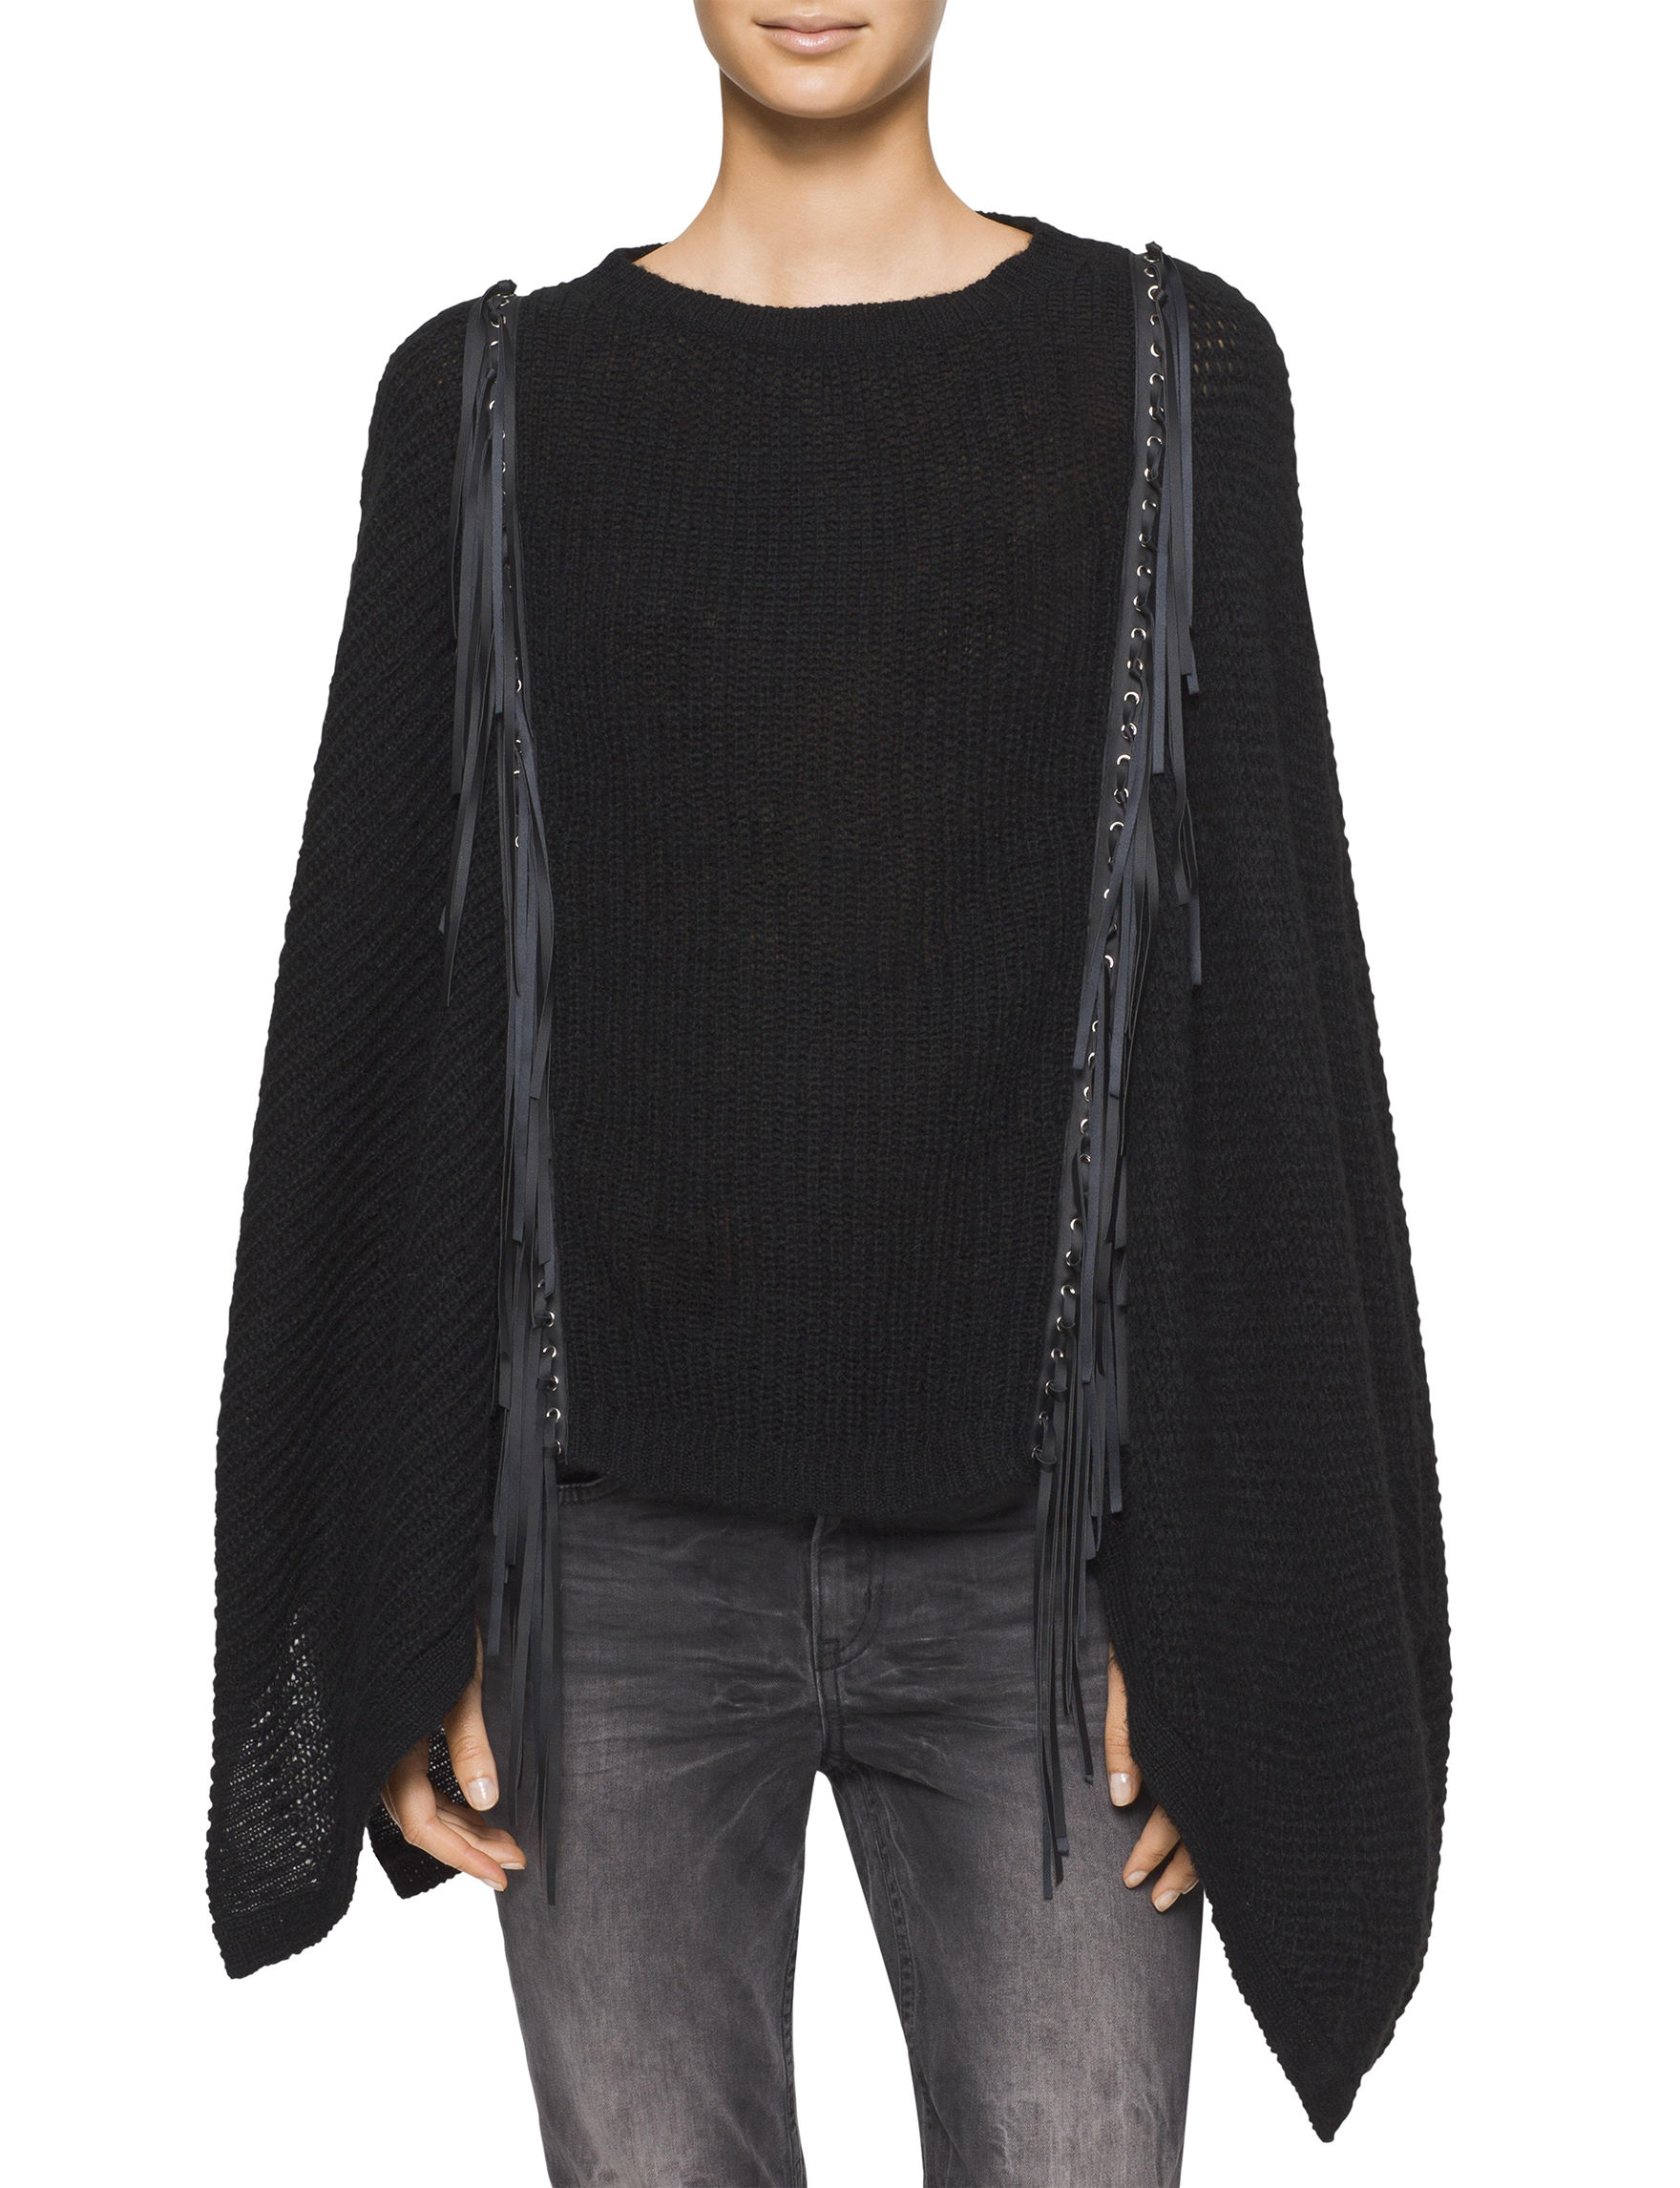 Calvin Klein Jeans Black Ponchos Pull-overs Sweaters